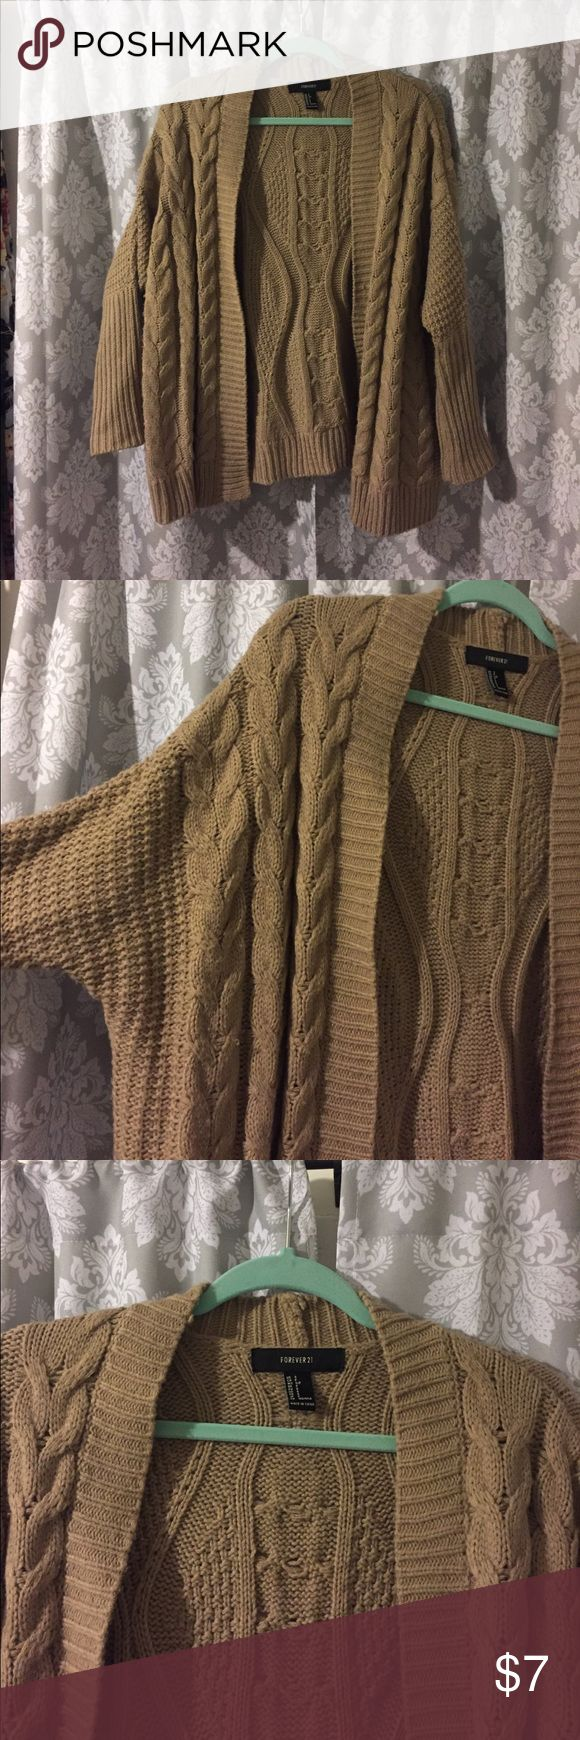 Forever 21 grandpa sweater This grandpa sweater is super comfortable and not too long on the Torso! Forever 21 Sweaters Cardigans